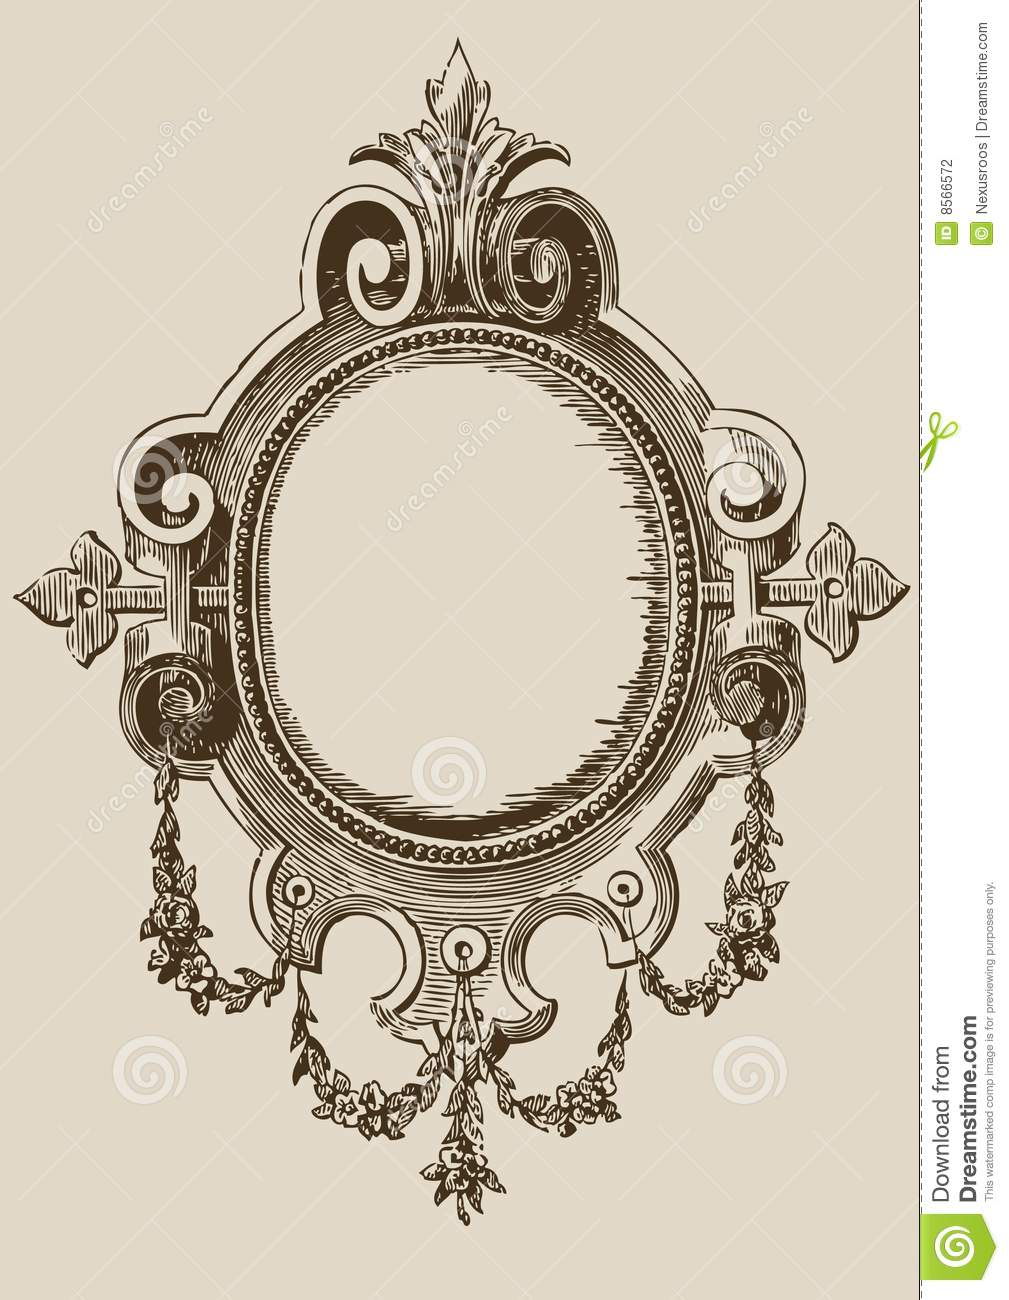 Black And White Illustration Of An Old Mirror With A Large Antique